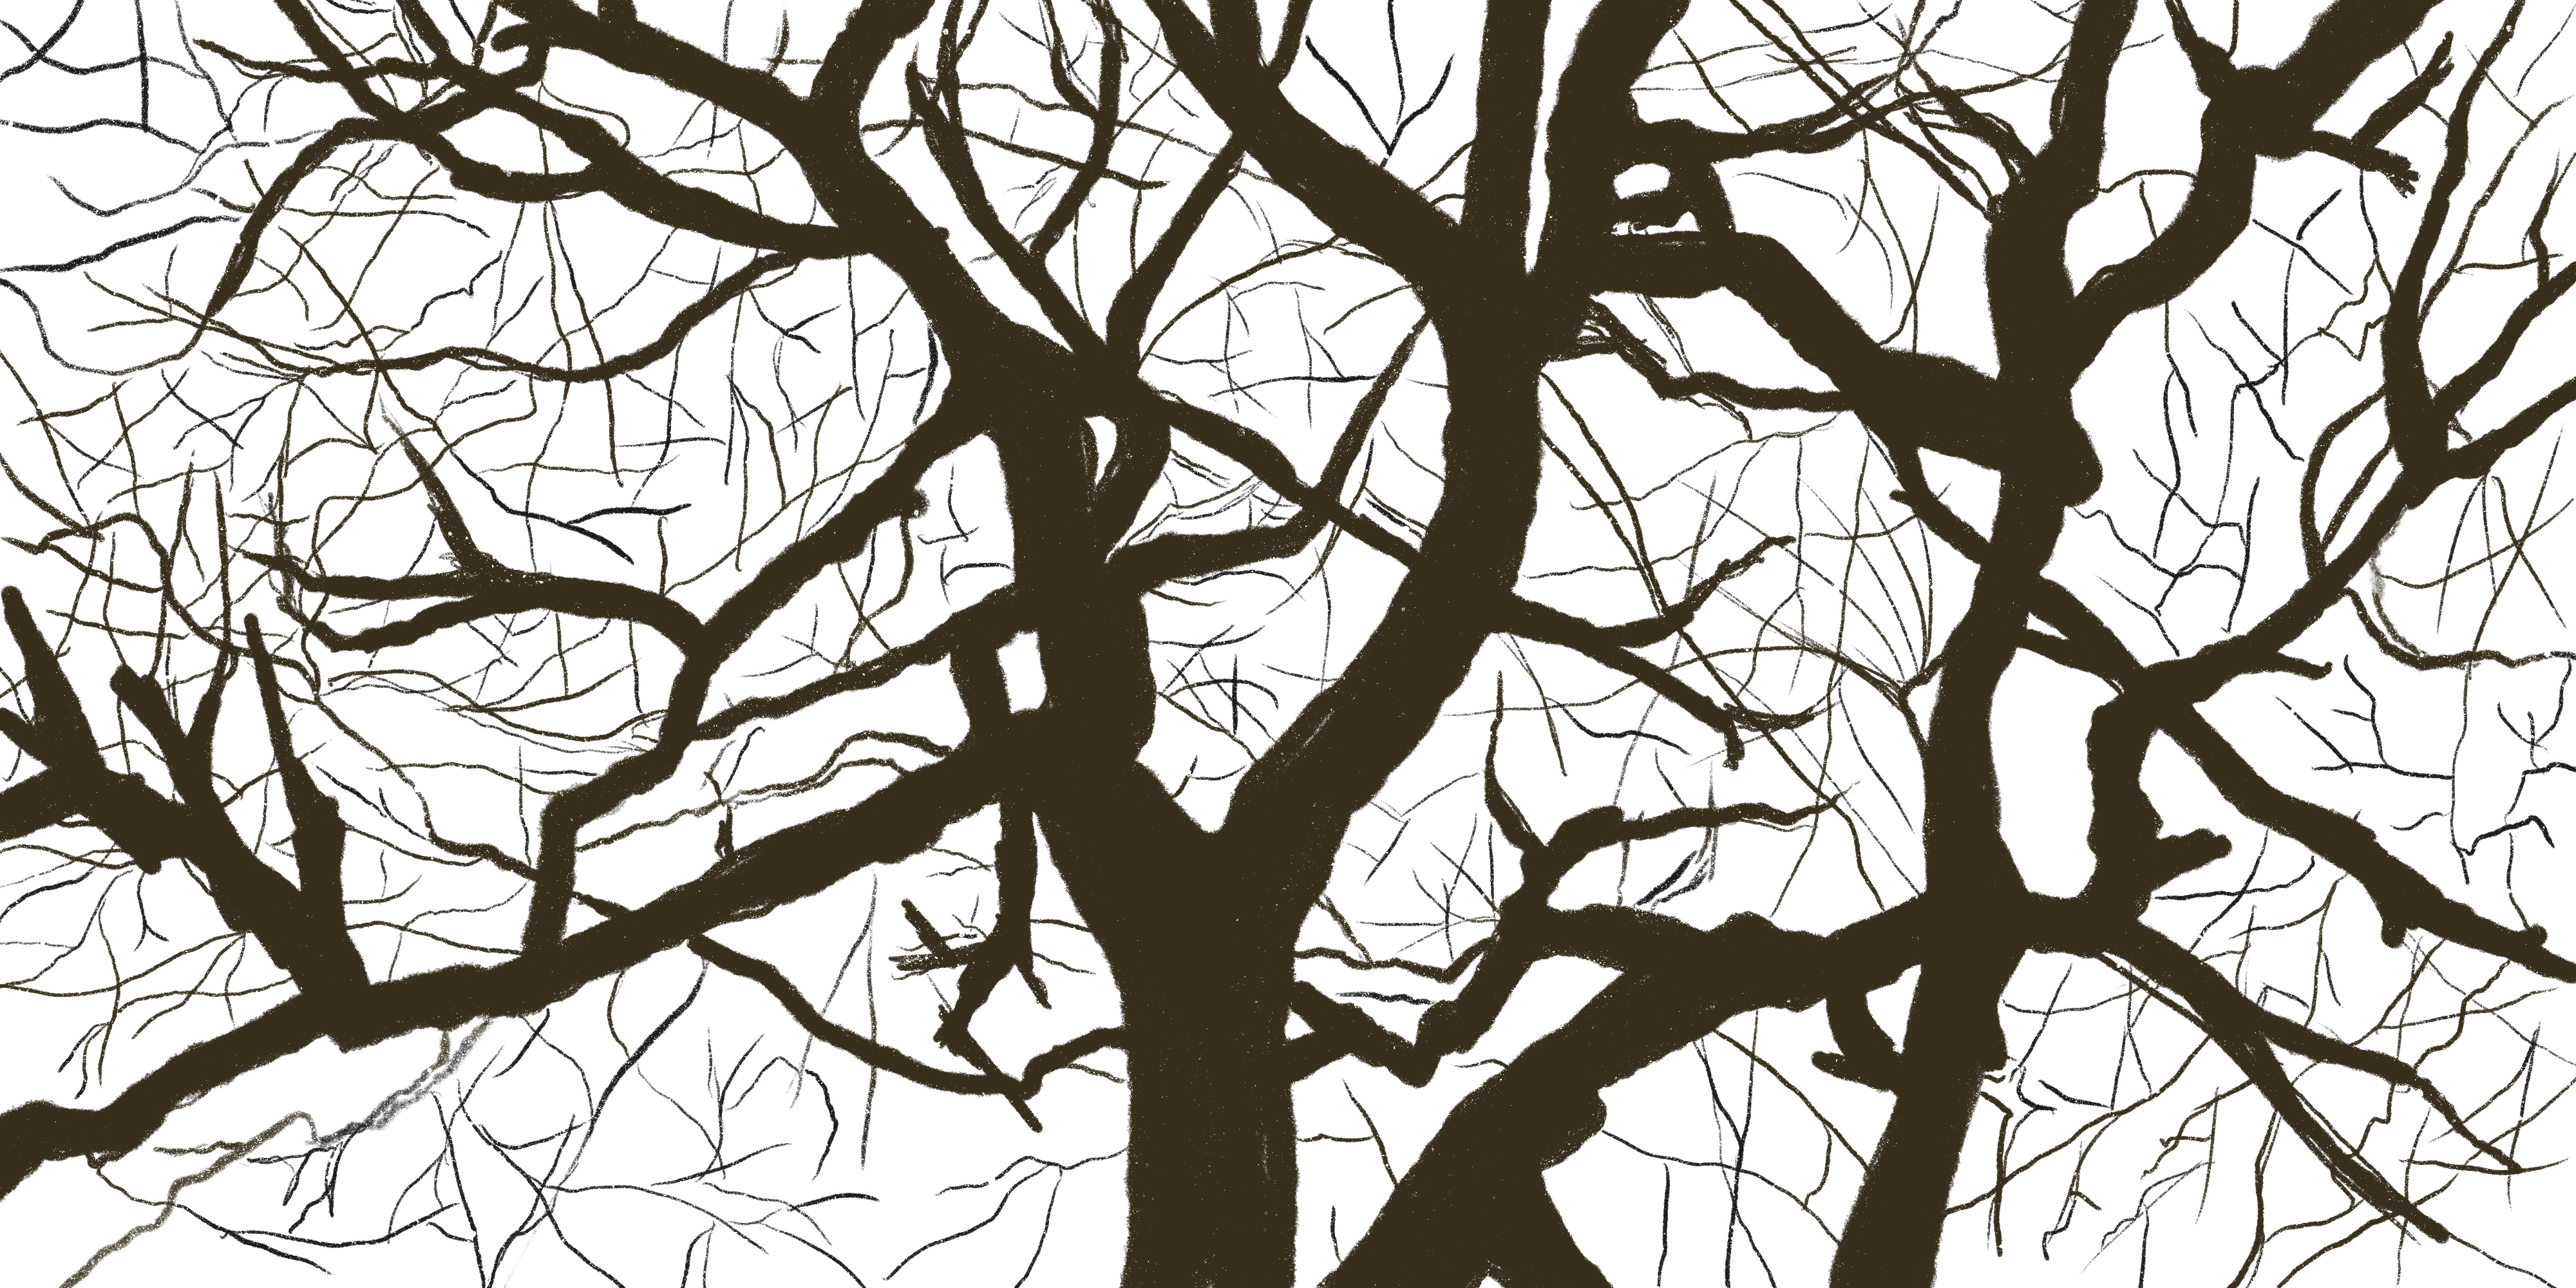 A black and white tree illustration.